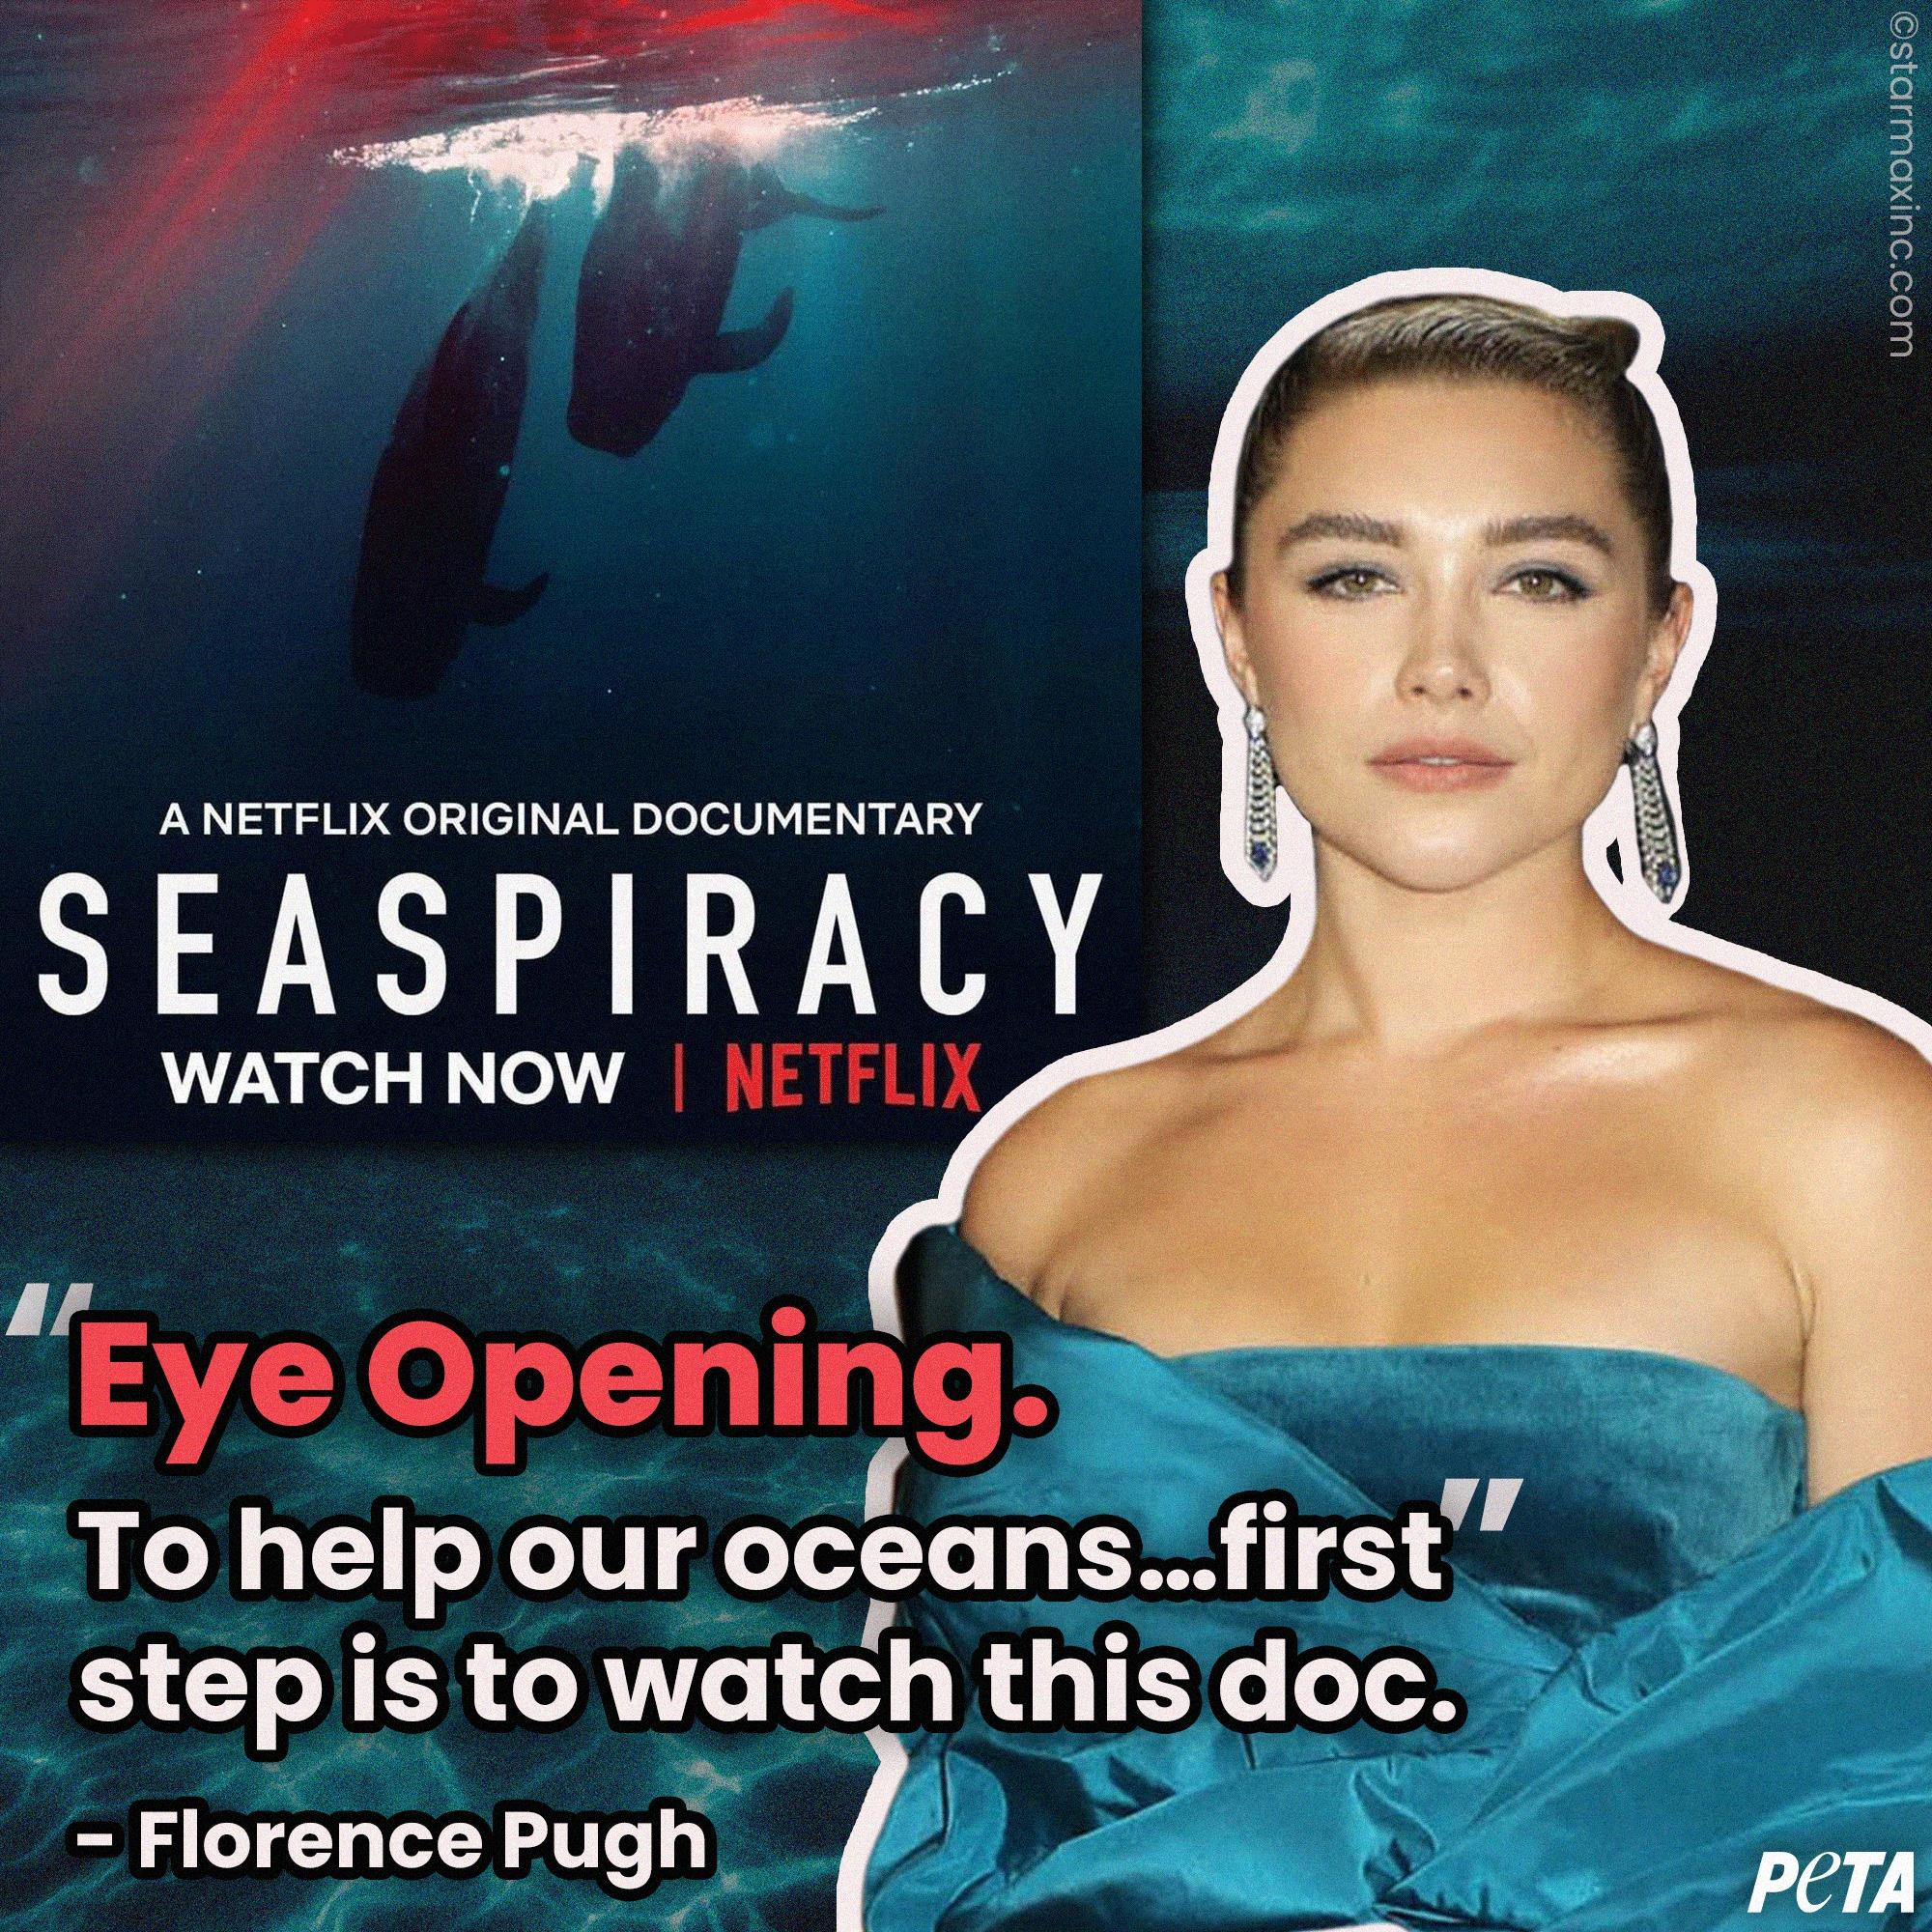 A great message from Midsommar actor, Florence Pugh and we couldn't agree more 👏 If you care about our planet, ocean, sea life, or your health go watch Seaspiracy NOW on Netflix like the Little Women star recommends